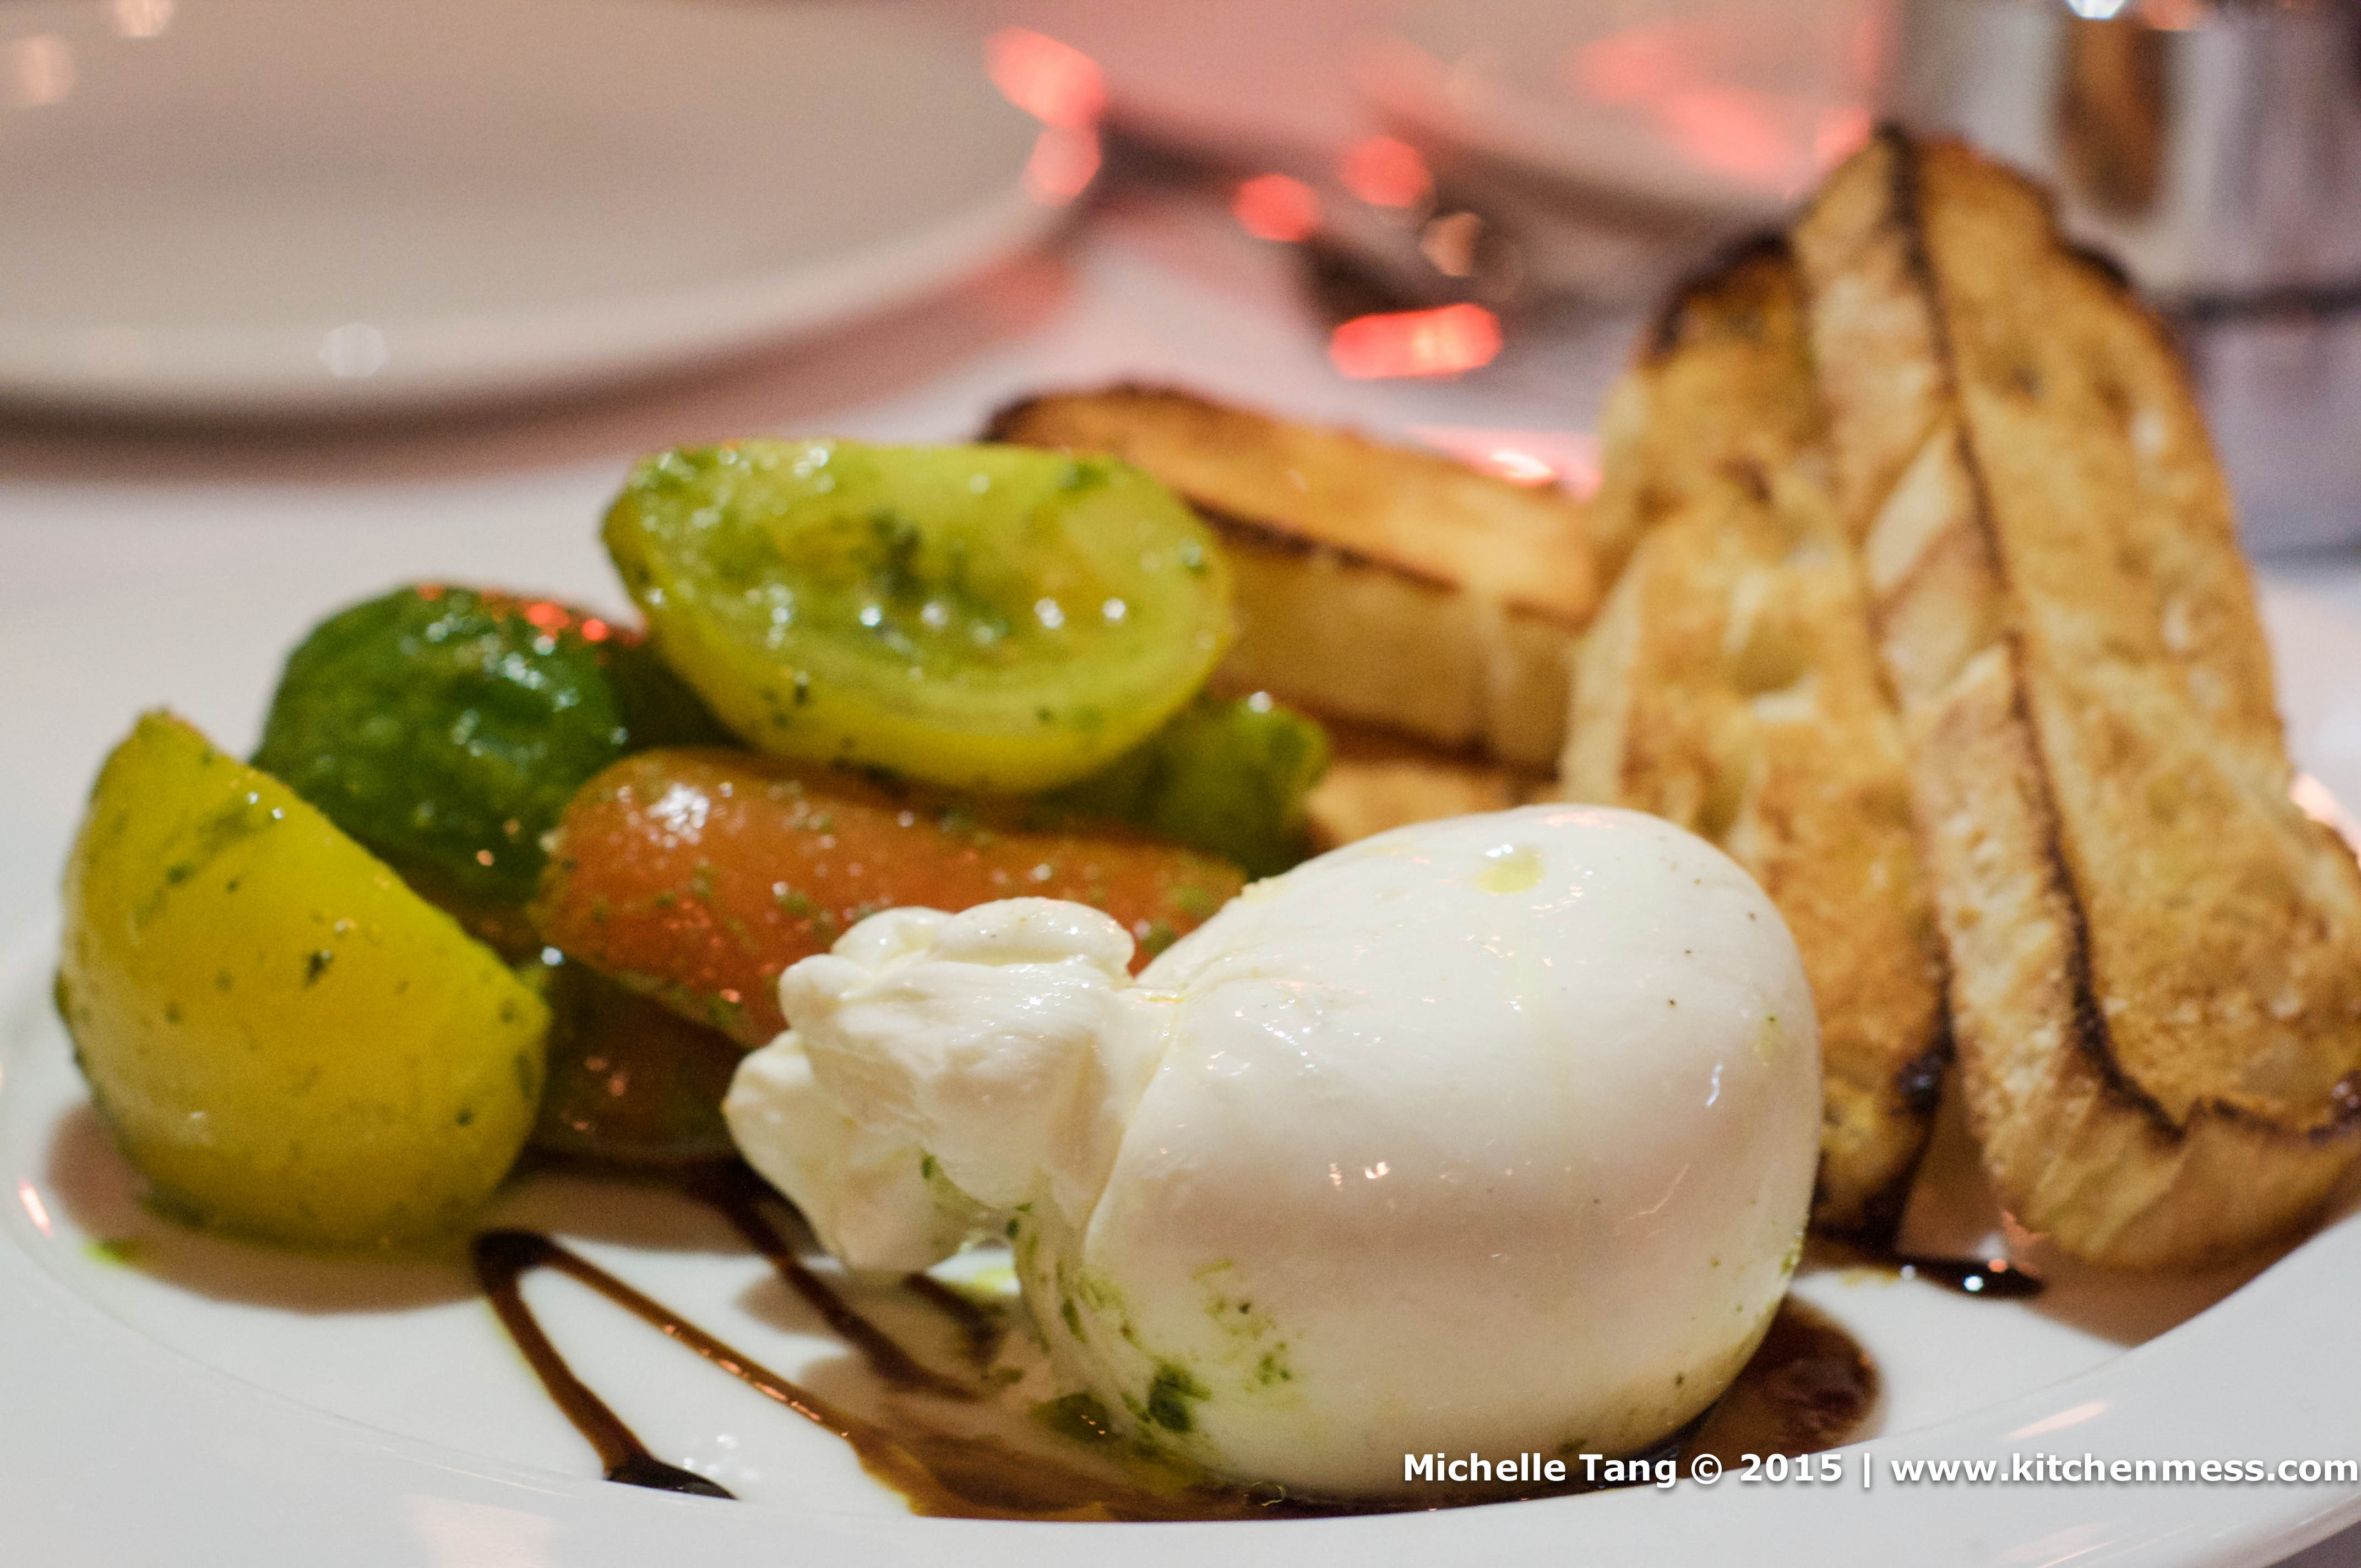 Burrata and Heirloom Tomato Salad marinated in balsamic pesto, with ...